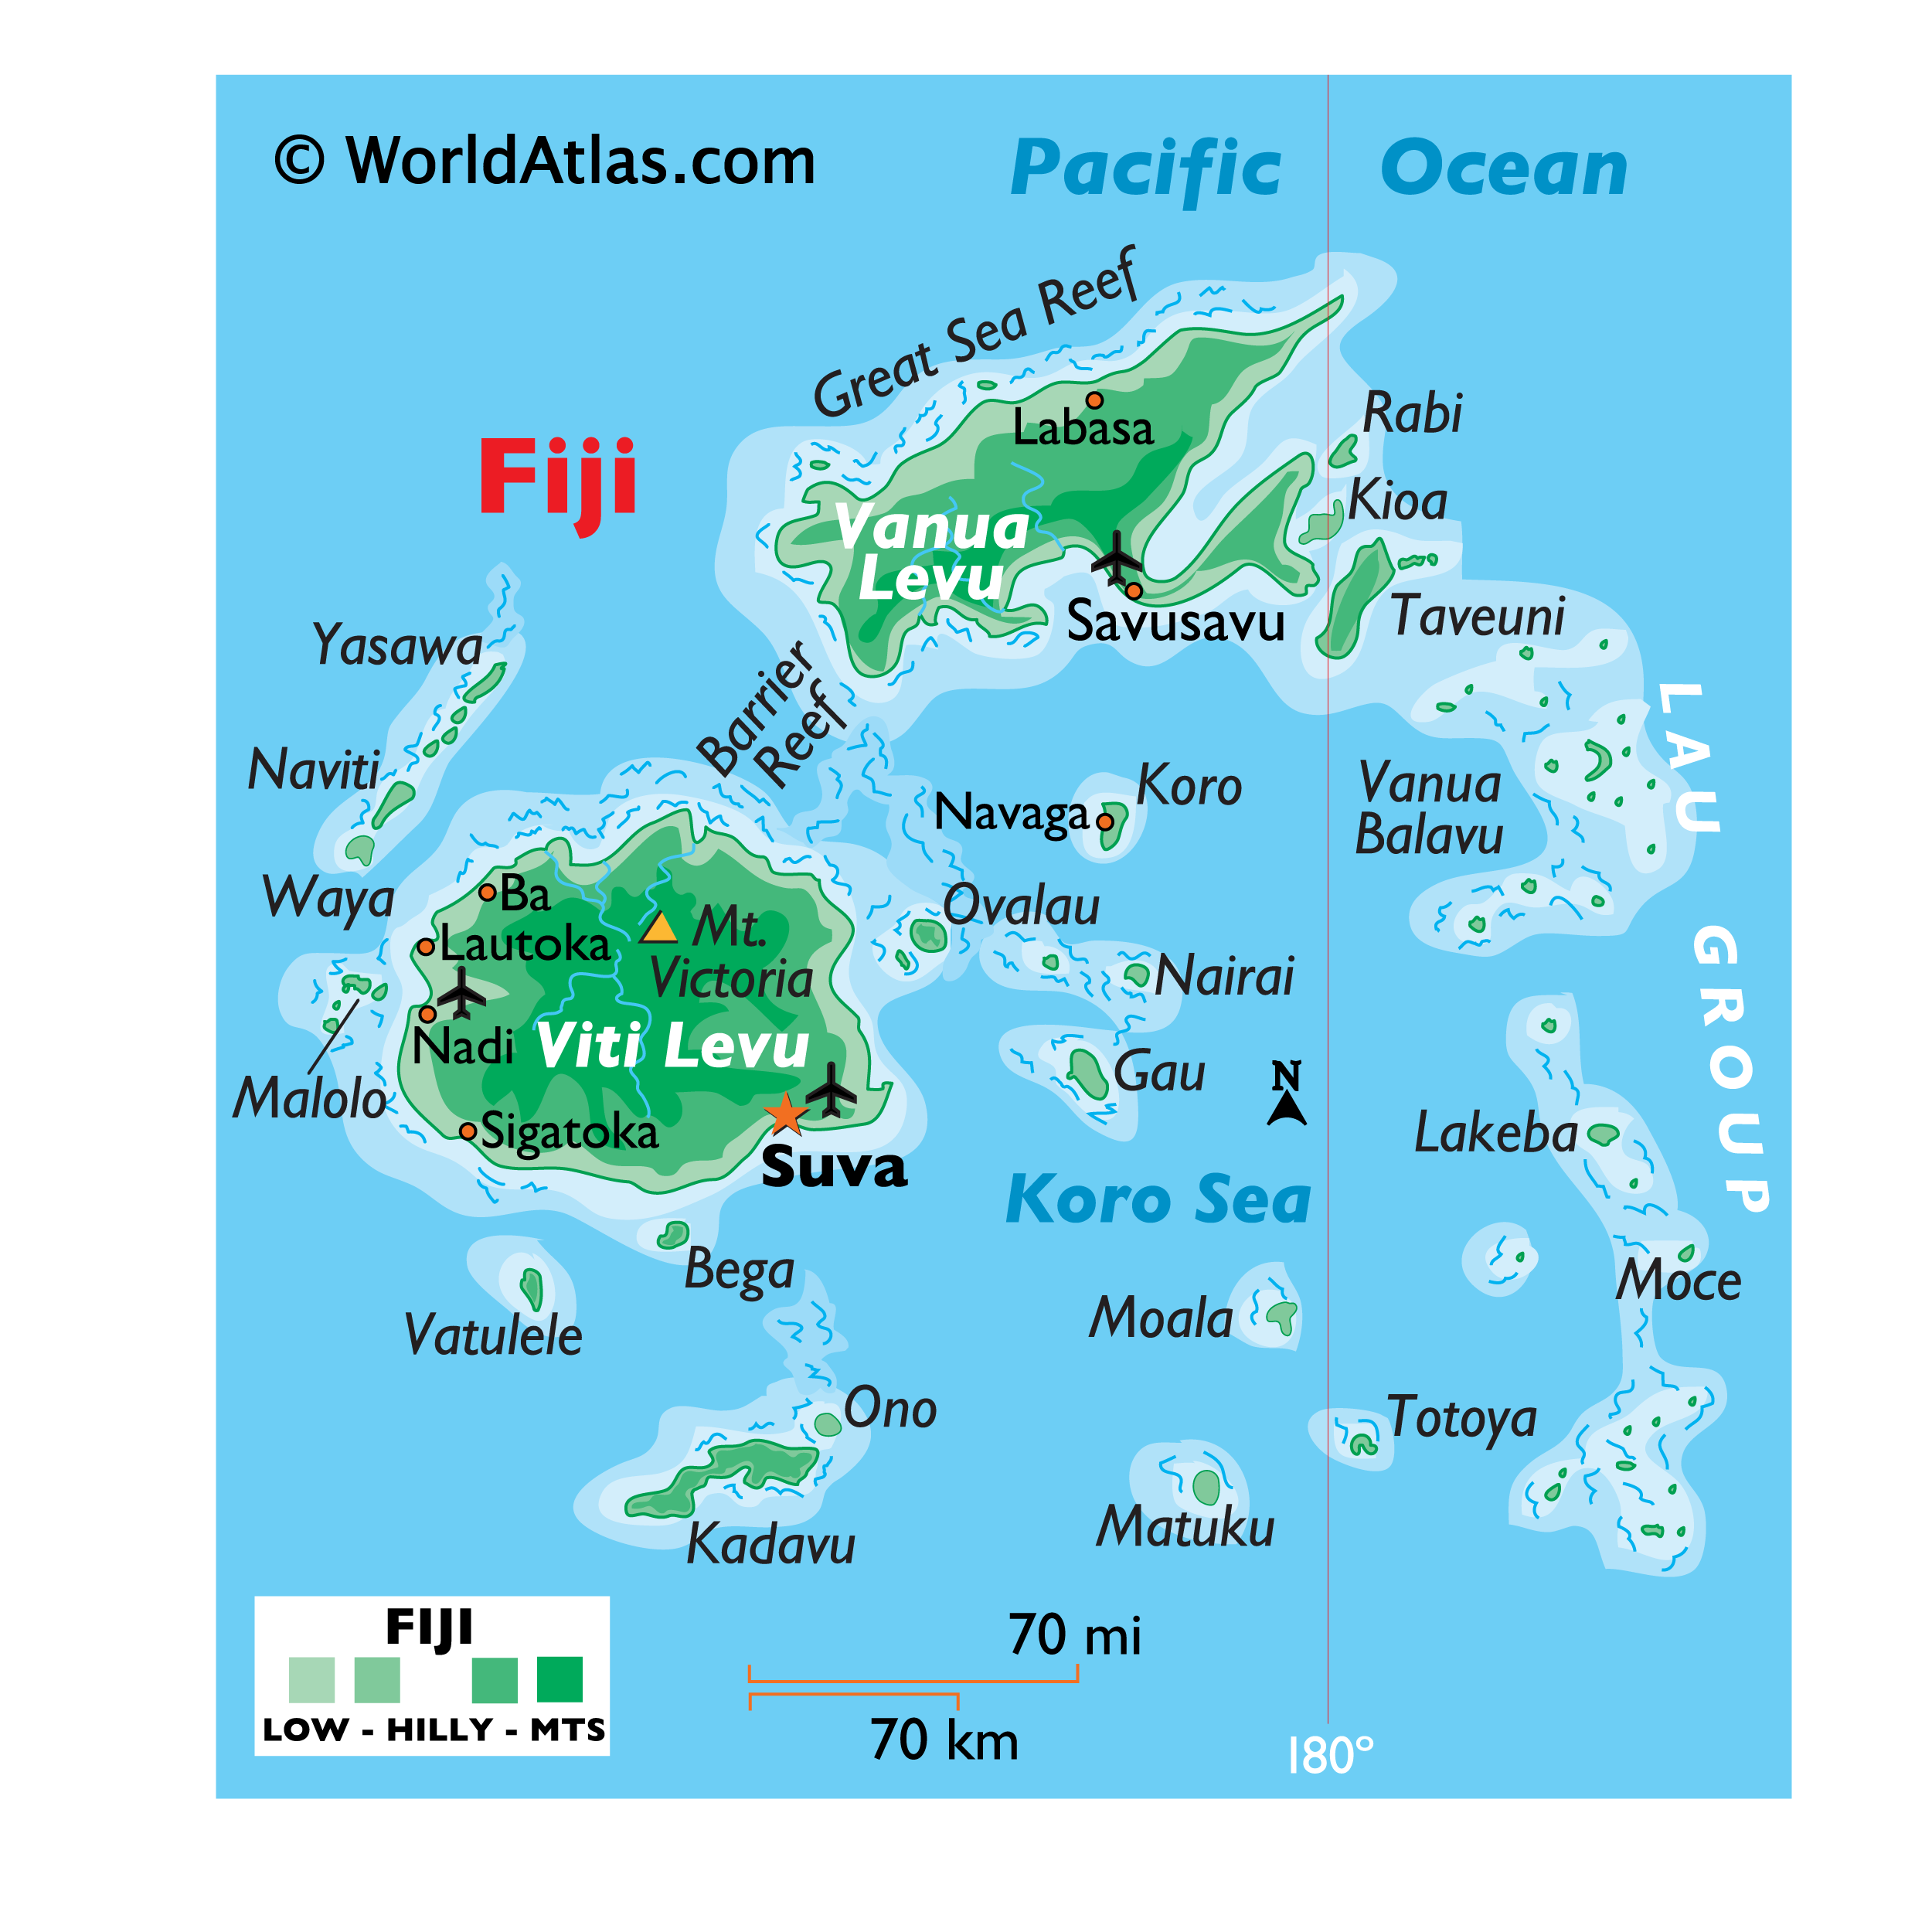 Physical Map of Fiji showing islands, relief, Mount Victoria, important settlements, etc.